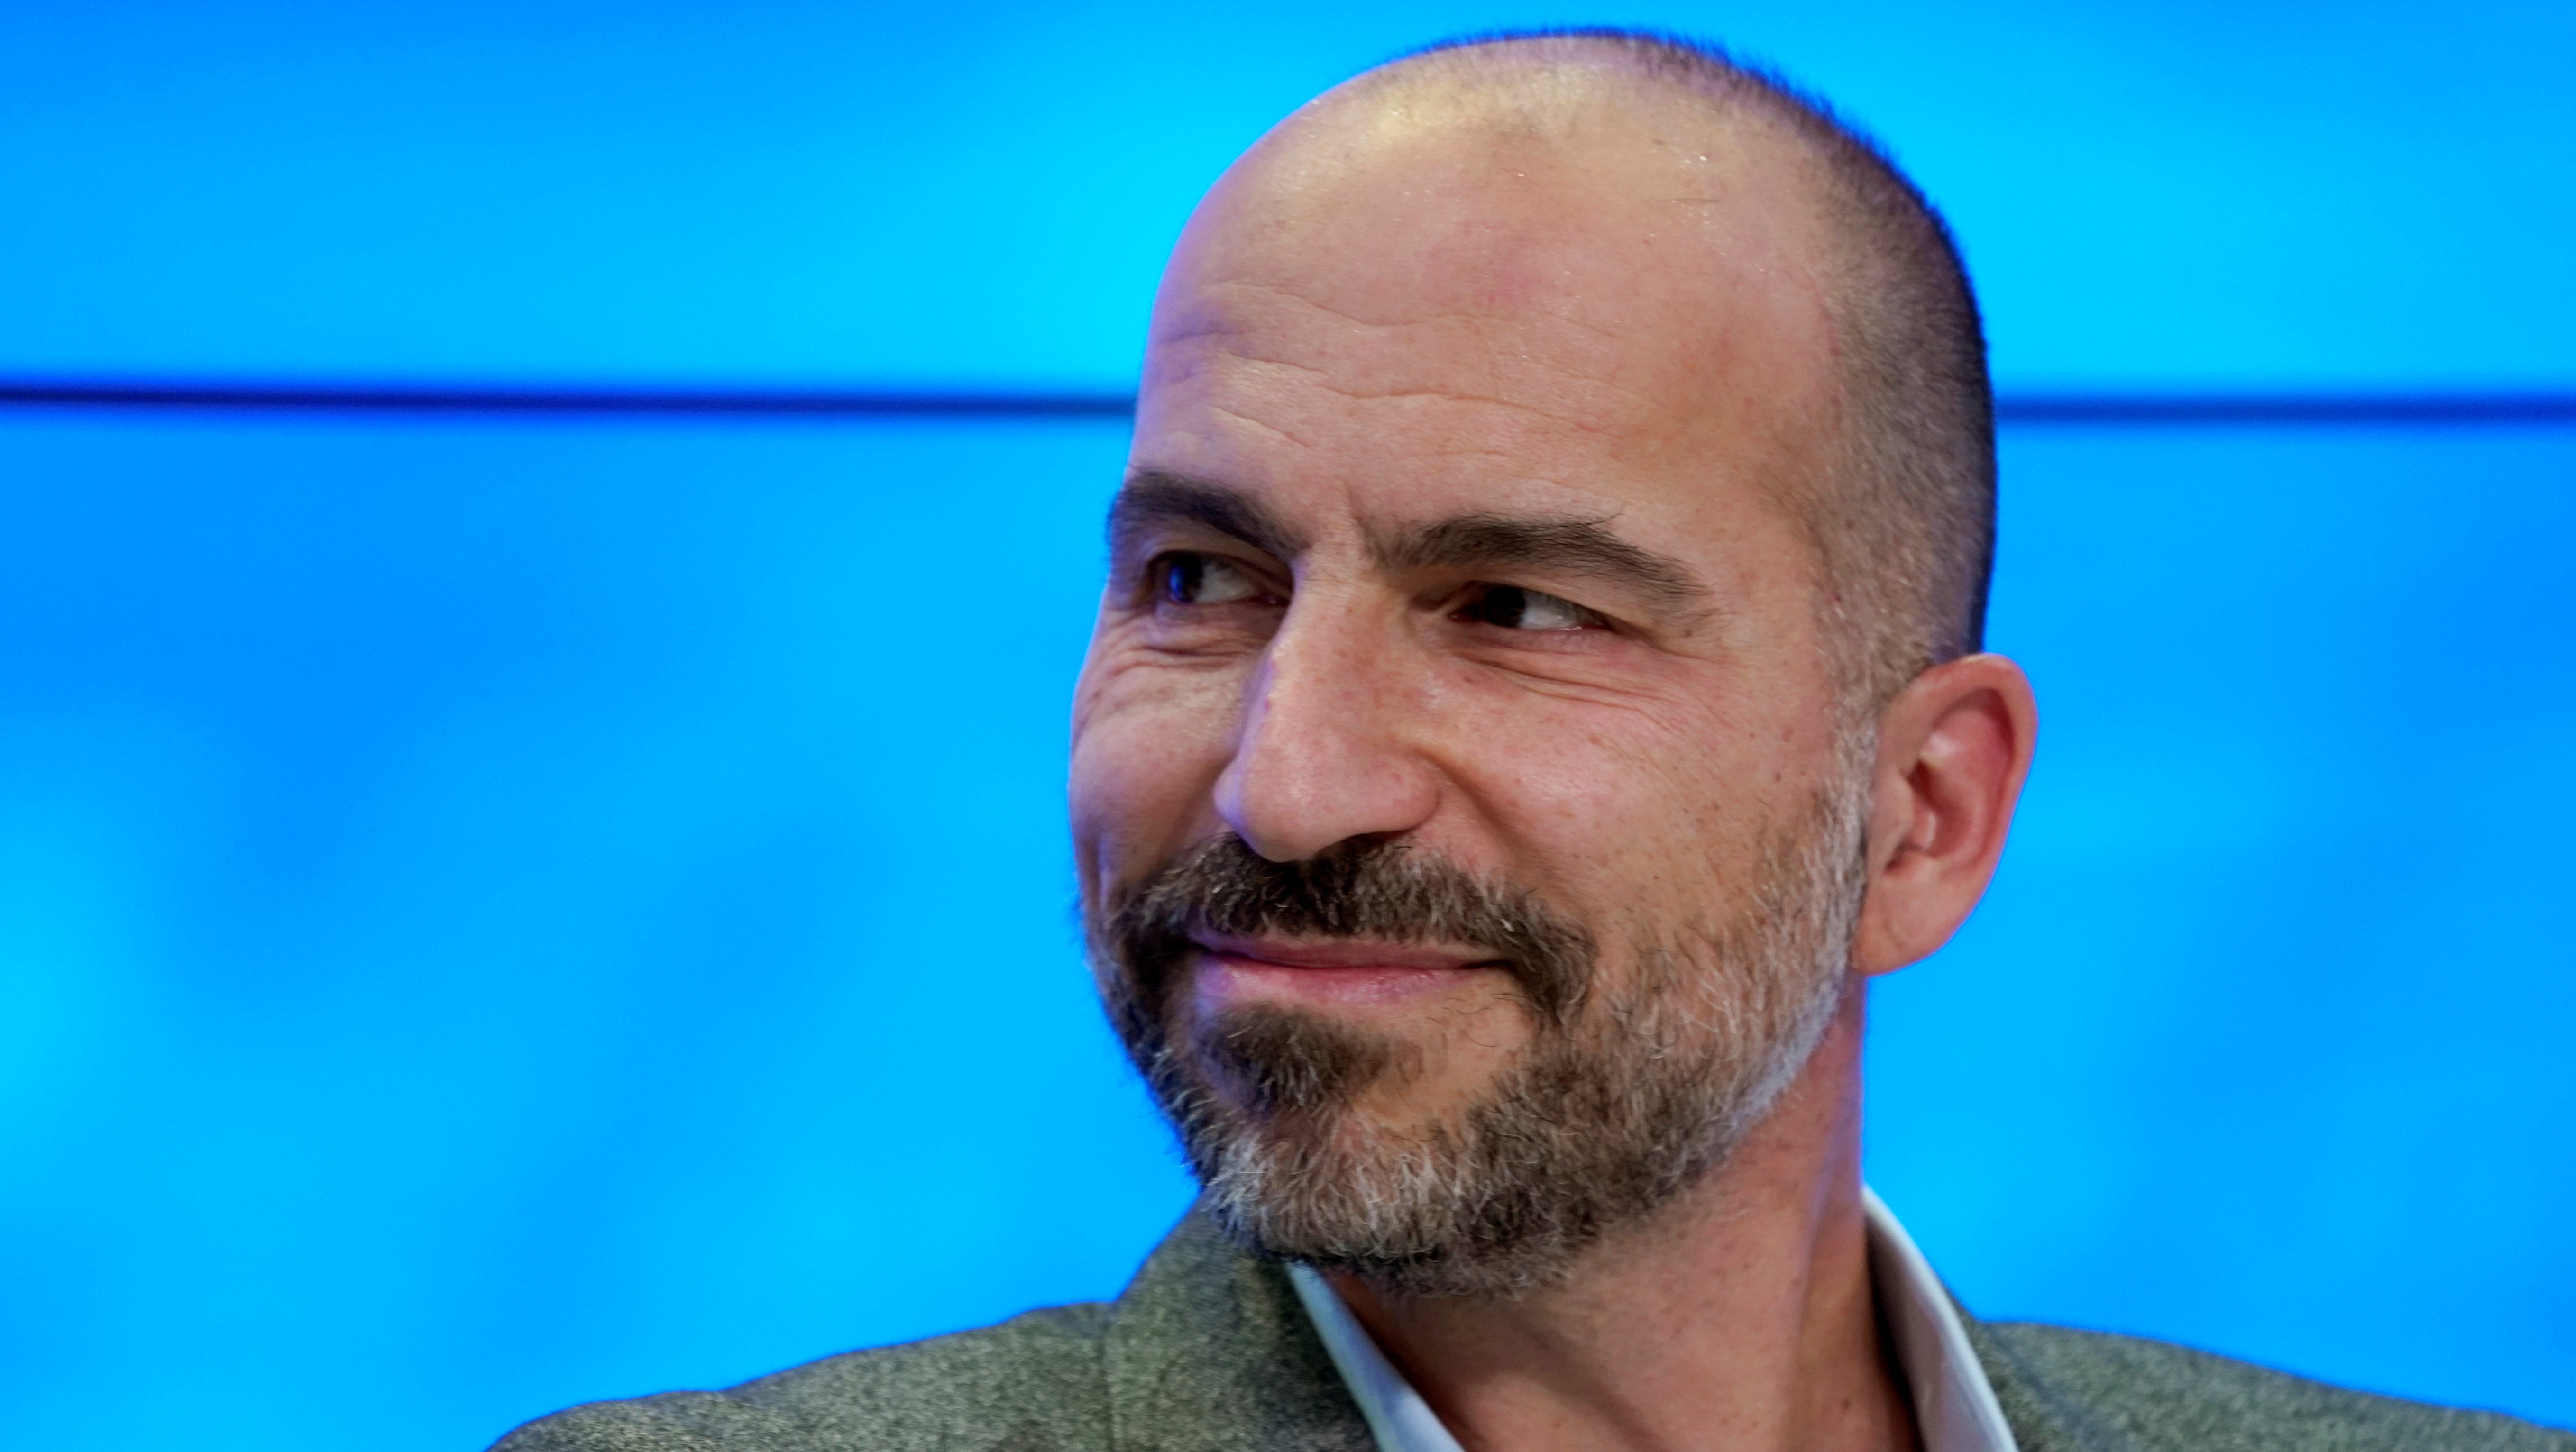 Dara Khosrowshahi, Chief Executive Officer of Uber Technologies, looks on as he attends the World Economic Forum (WEF) annual meeting in Davos, Switzerland, January 23, 2018.